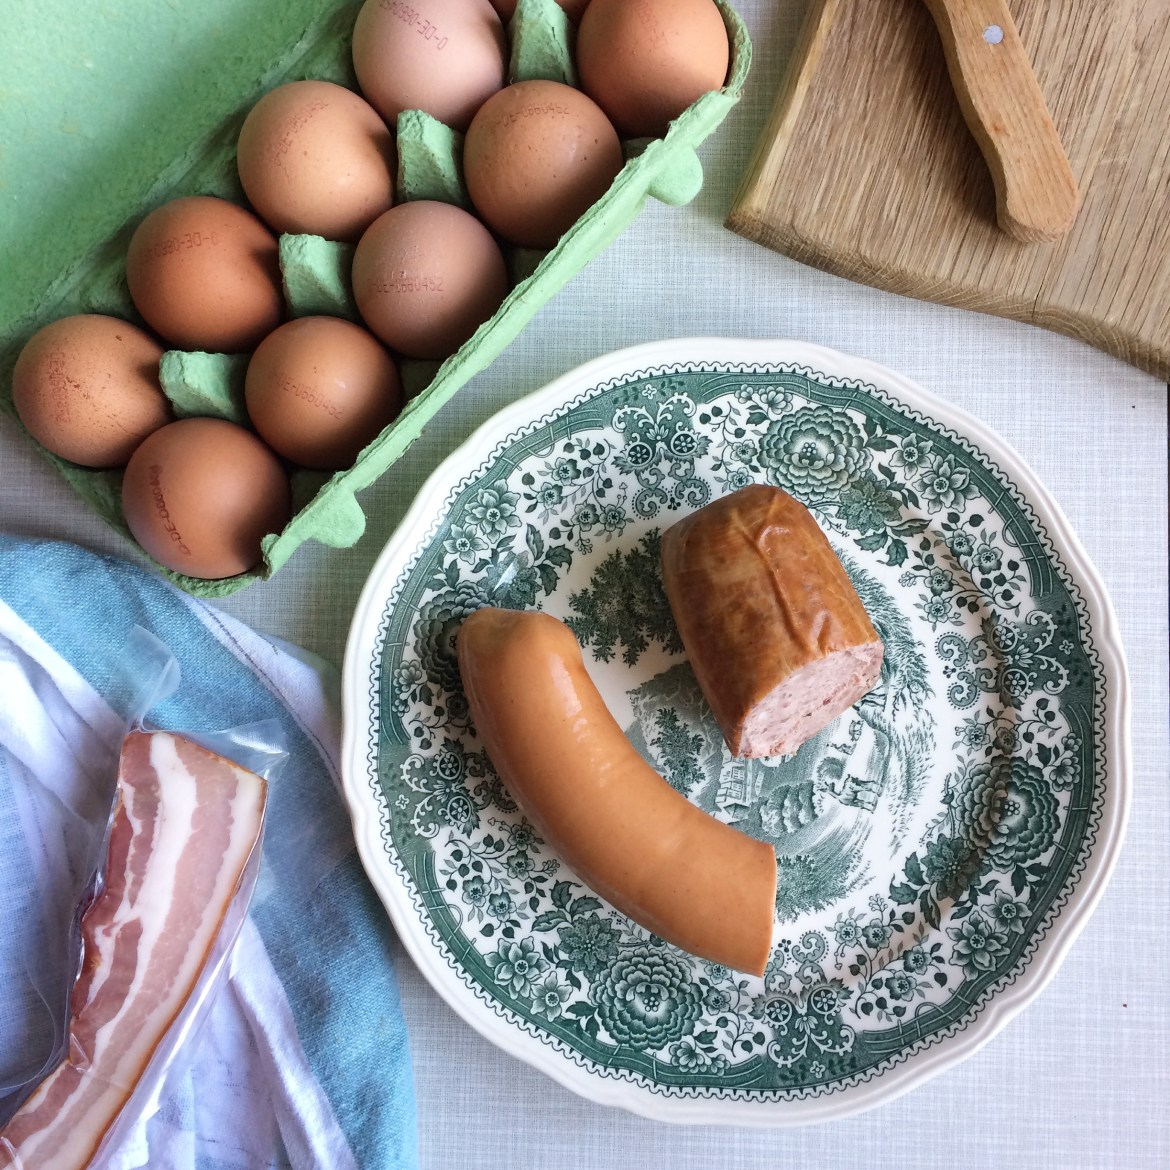 A green patterned plate with Fleischwurst and Leberwurst on next to a carton of eggs and some vacuum-packed bacon